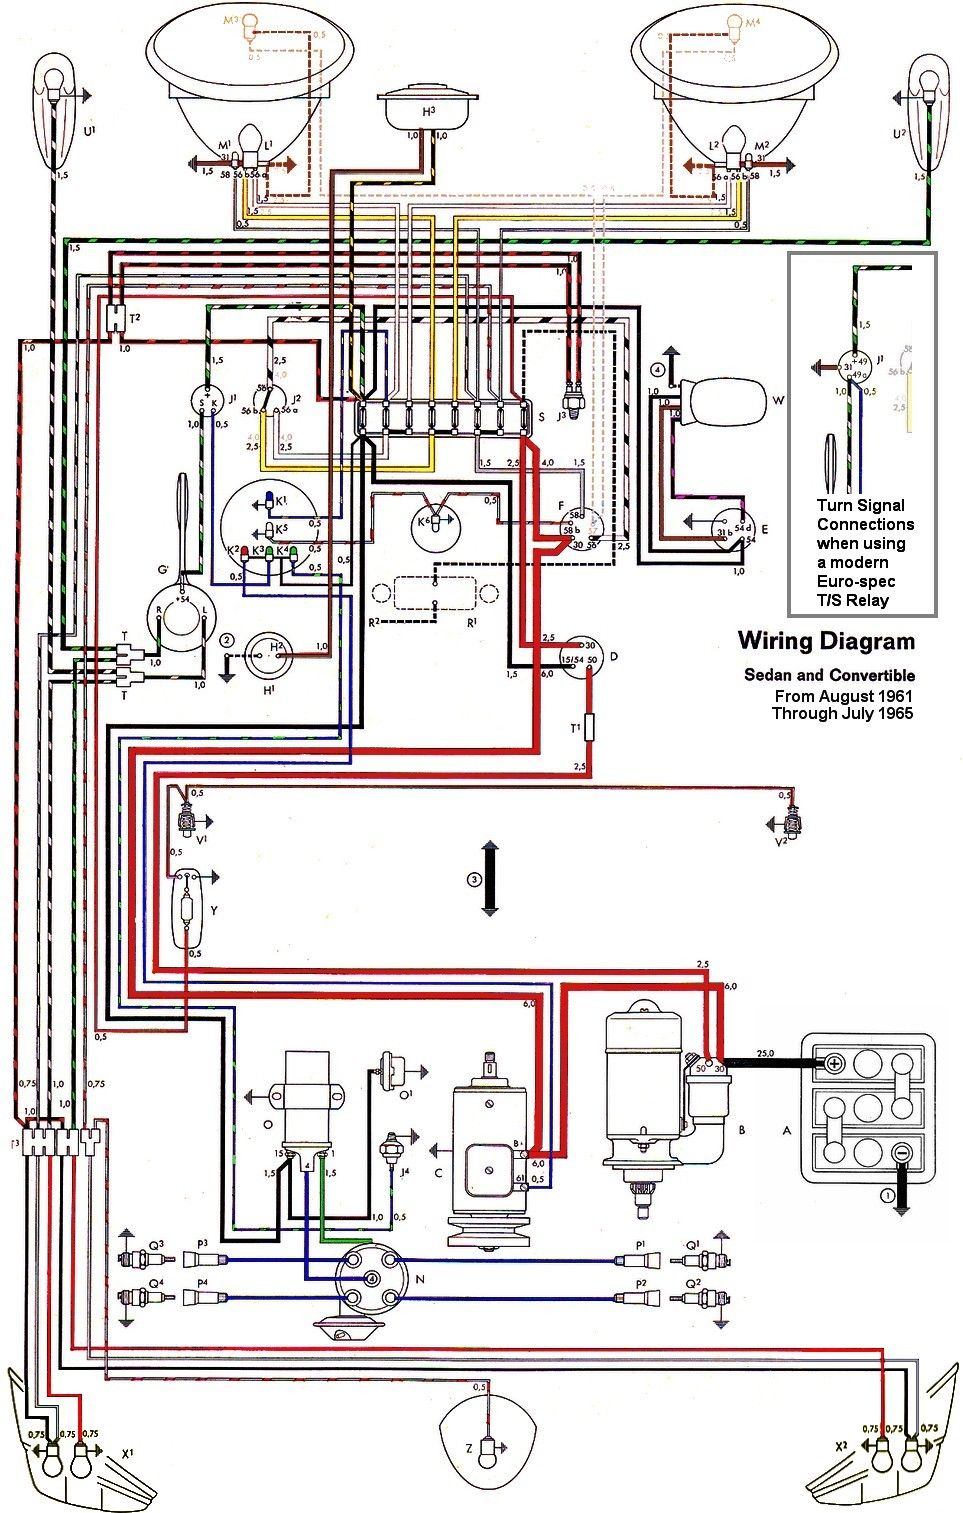 wiring diagram vw beetle sedan and convertible 1961 1965 vw rh pinterest com 1965 vw beetle wiring harness 1965 vw bug wiring harness